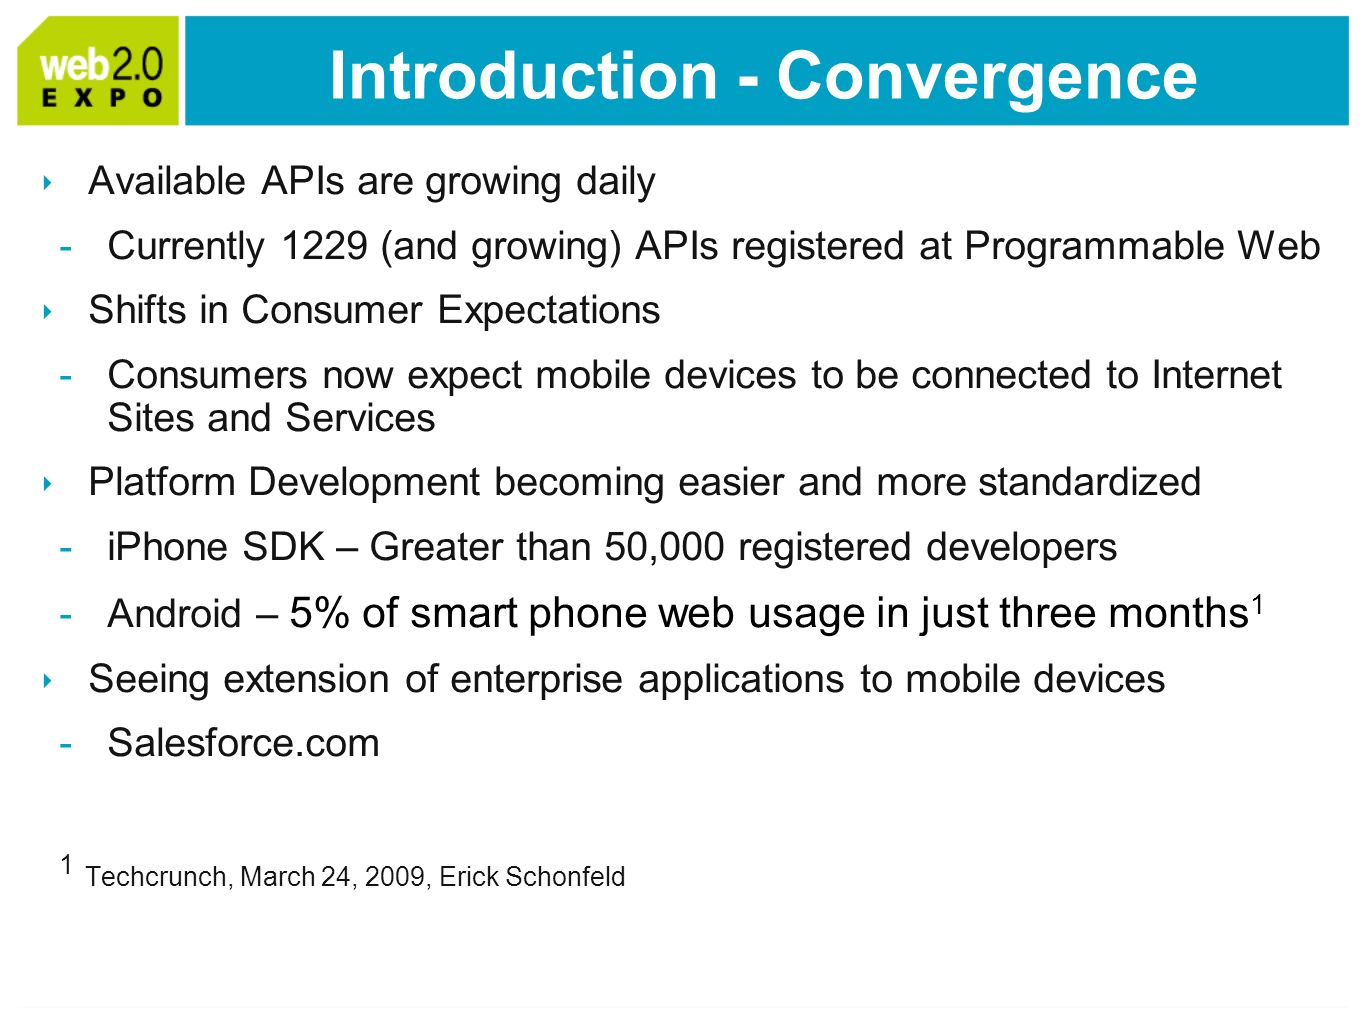 Introduction - Convergence Available APIs are growing daily -Currently 1229 (and growing) APIs registered at Programmable Web Shifts in Consumer Expectations -Consumers now expect mobile devices to be connected to Internet Sites and Services Platform Development becoming easier and more standardized -iPhone SDK – Greater than 50,000 registered developers -Android – 5% of smart phone web usage in just three months 1 Seeing extension of enterprise applications to mobile devices -Salesforce.com 1 Techcrunch, March 24, 2009, Erick Schonfeld